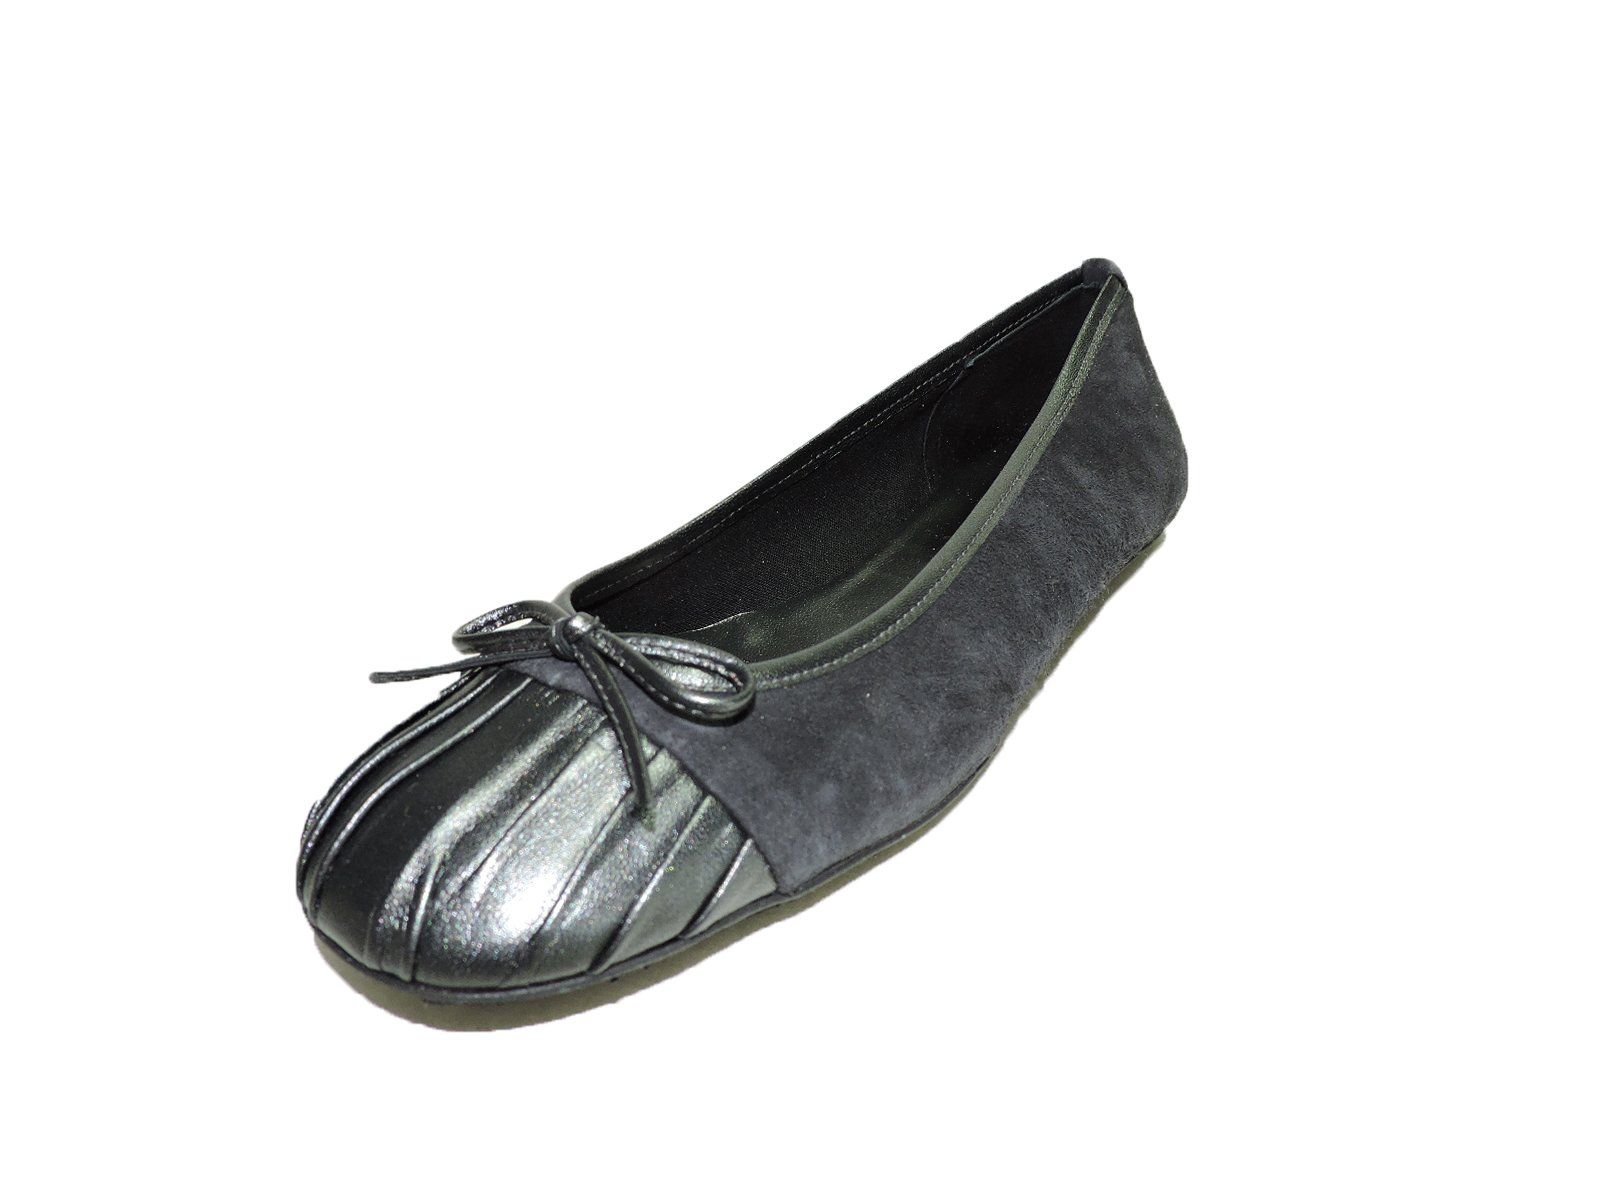 French Sole Fs/ny Women's Hiphop Black Suede, Quilted Toe Toe ... : french sole quilted ballet flats - Adamdwight.com